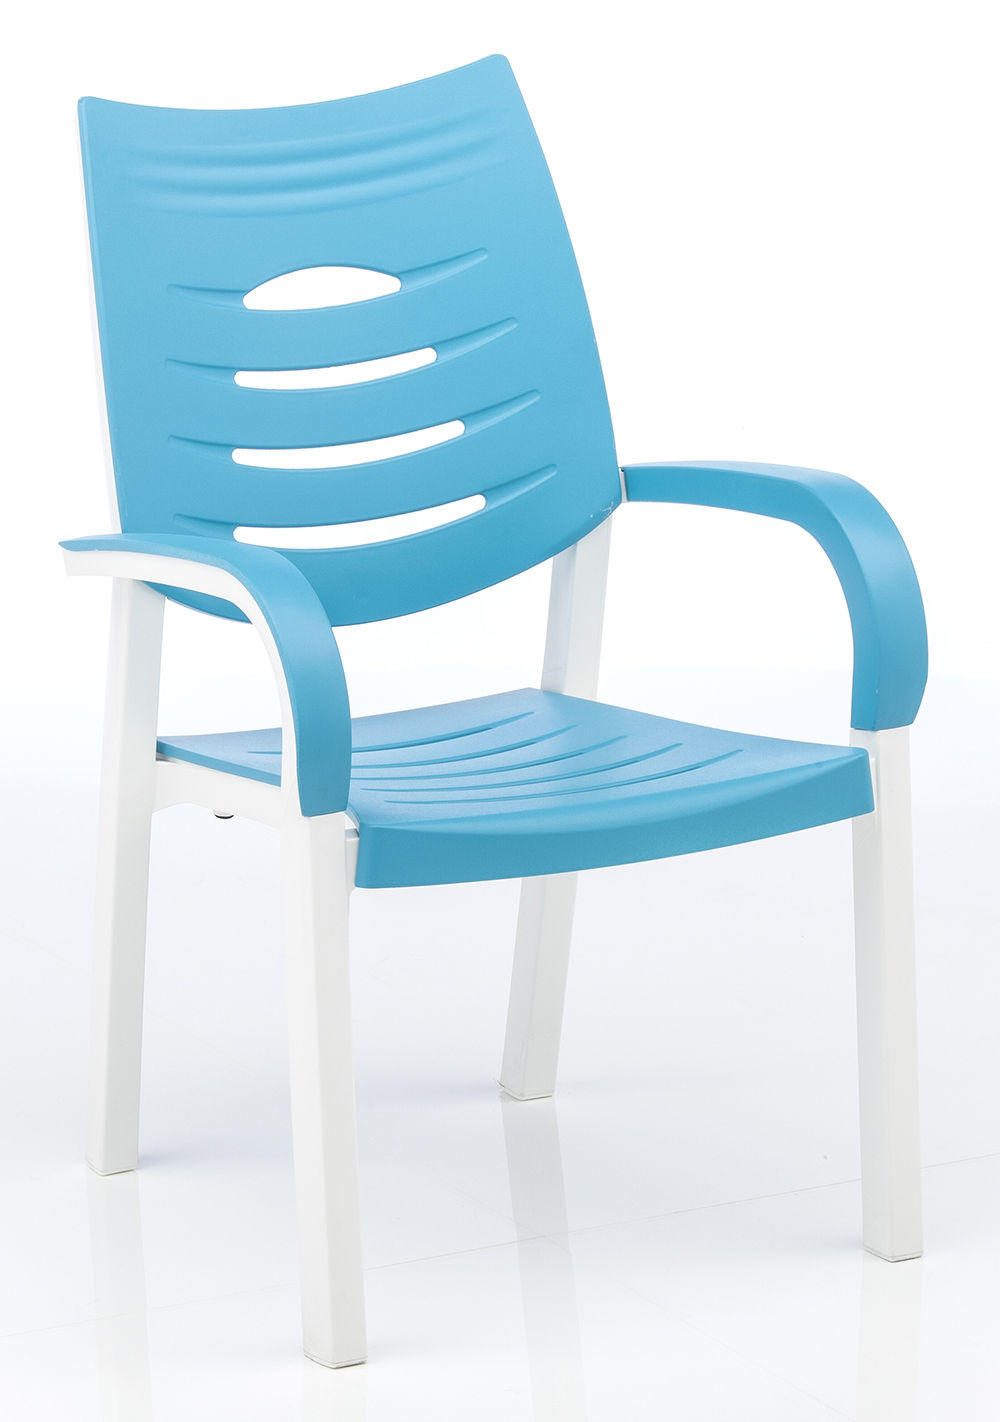 HAPPY CHAIR-TURQUOISE 310202-5200